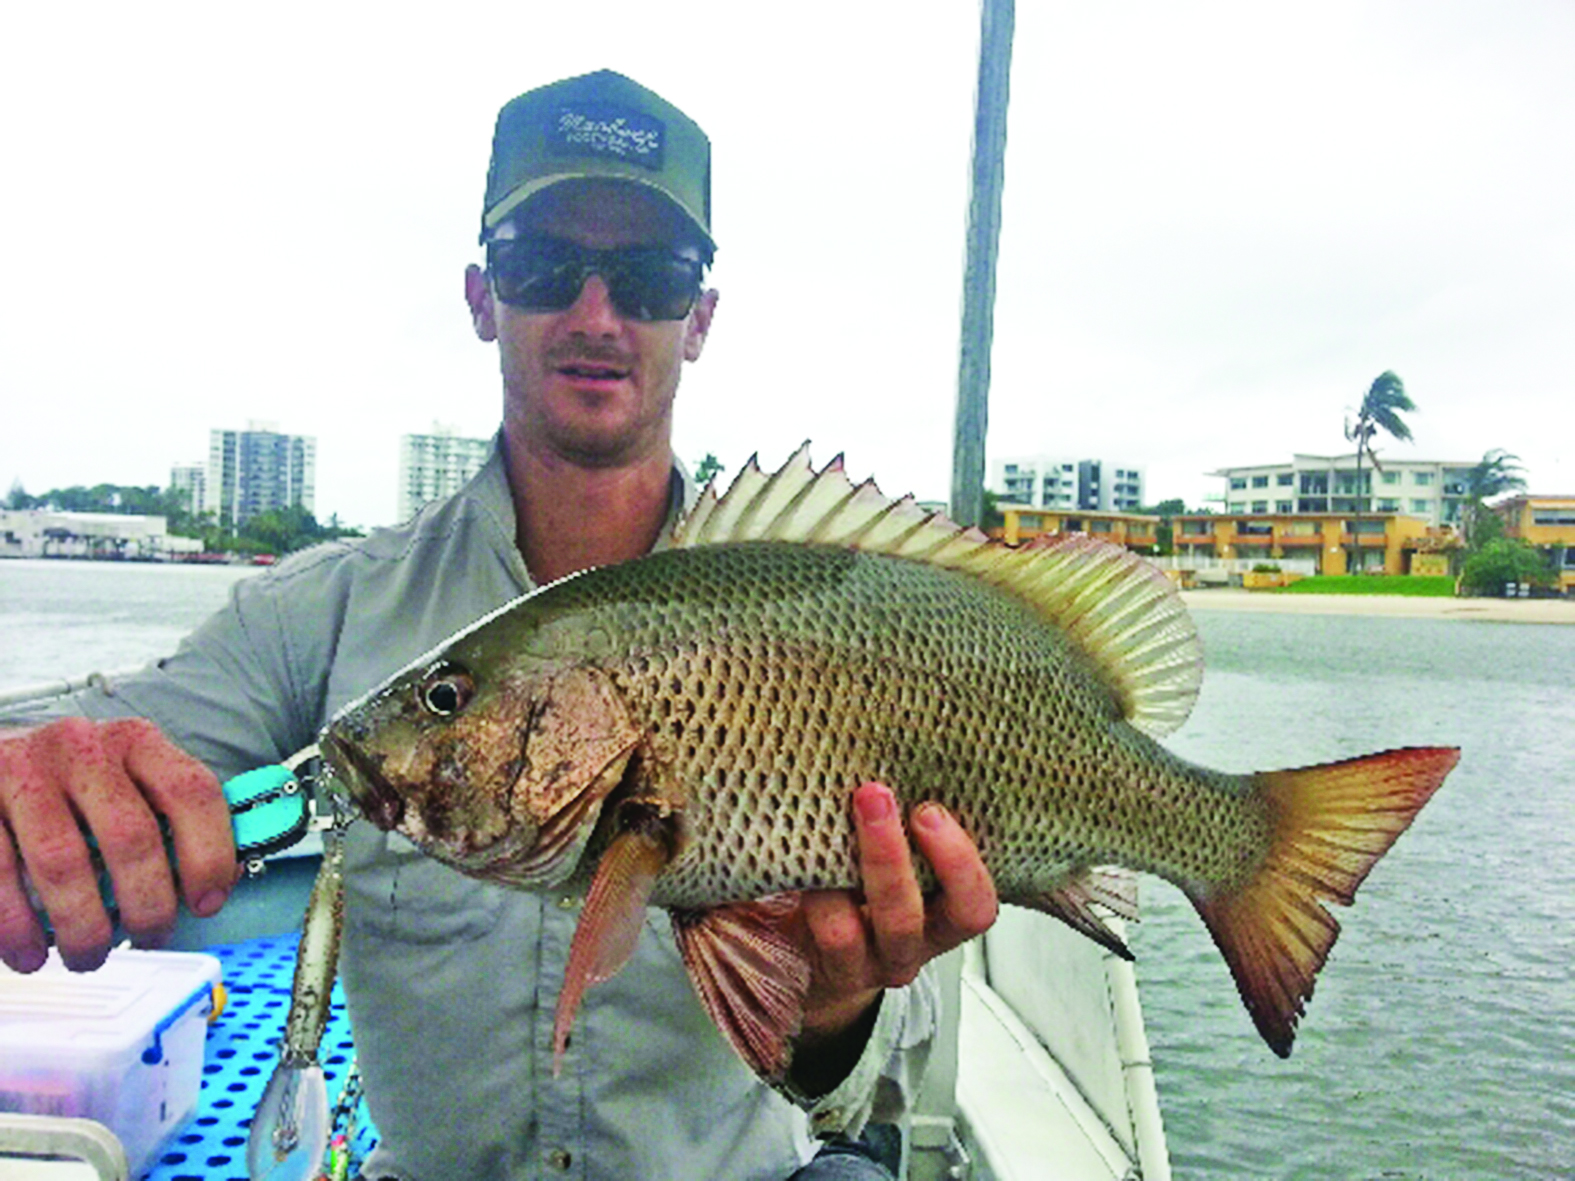 This quality jack fell victim to an Atomic 85DD lure trolled along the bottom over broken reef.